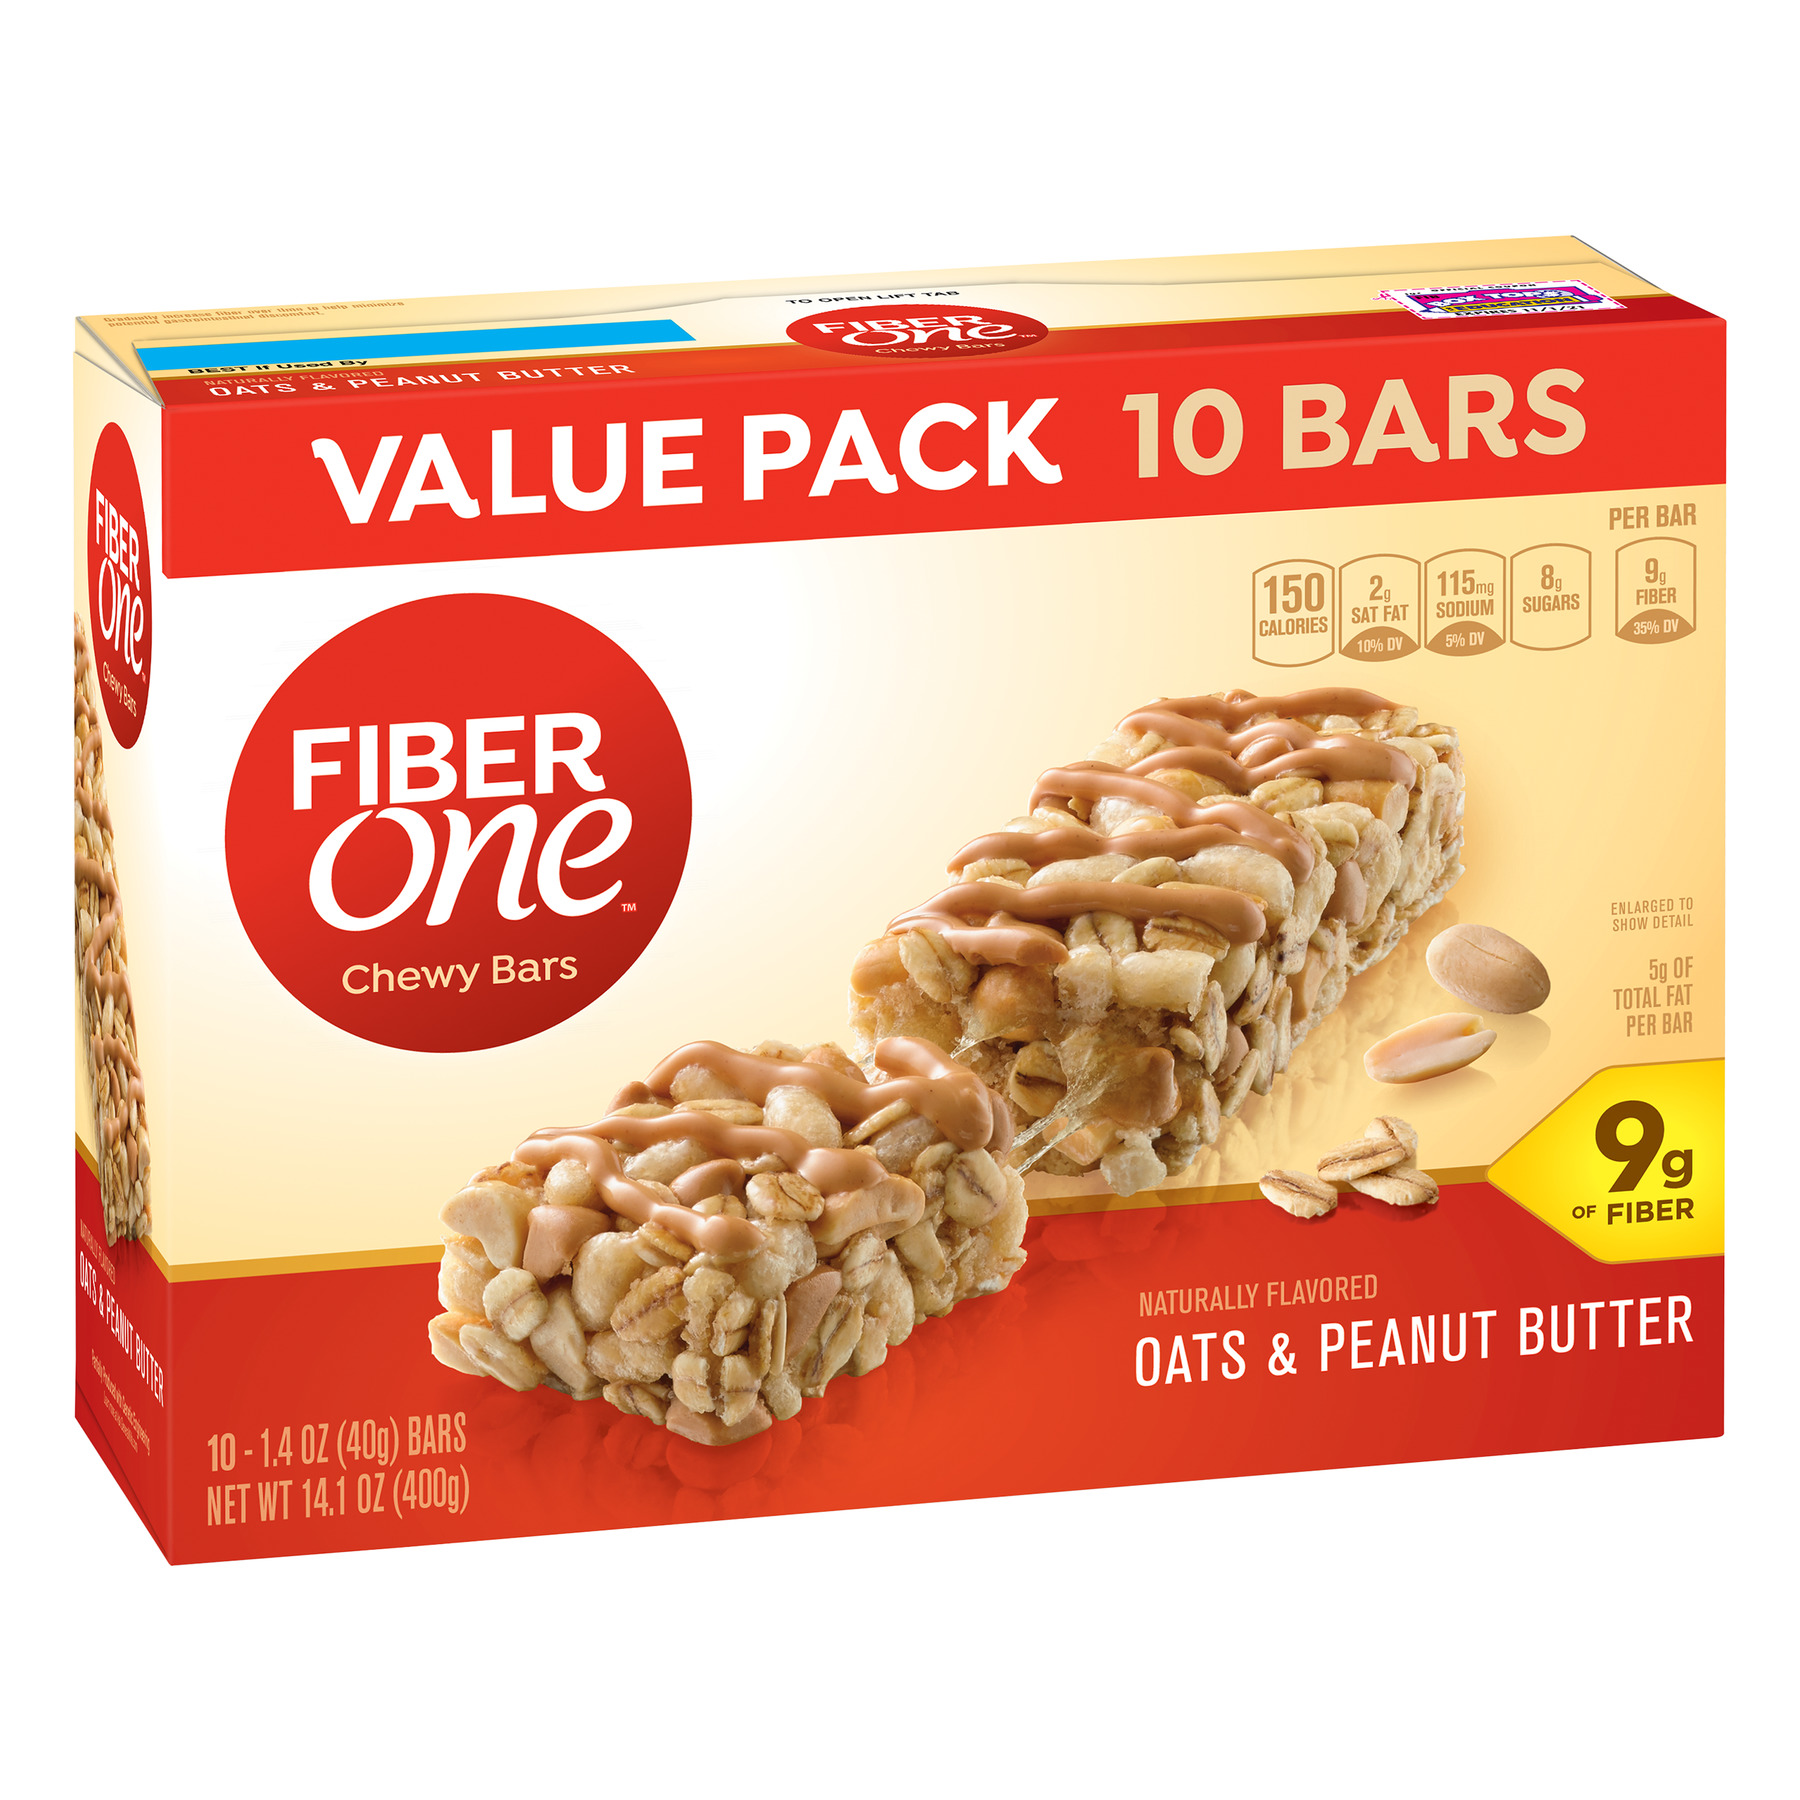 Fiber One Chewy Bar, Oats and Peanut Butter, 10 Fiber Bars, 14.1 oz (Value Pack)